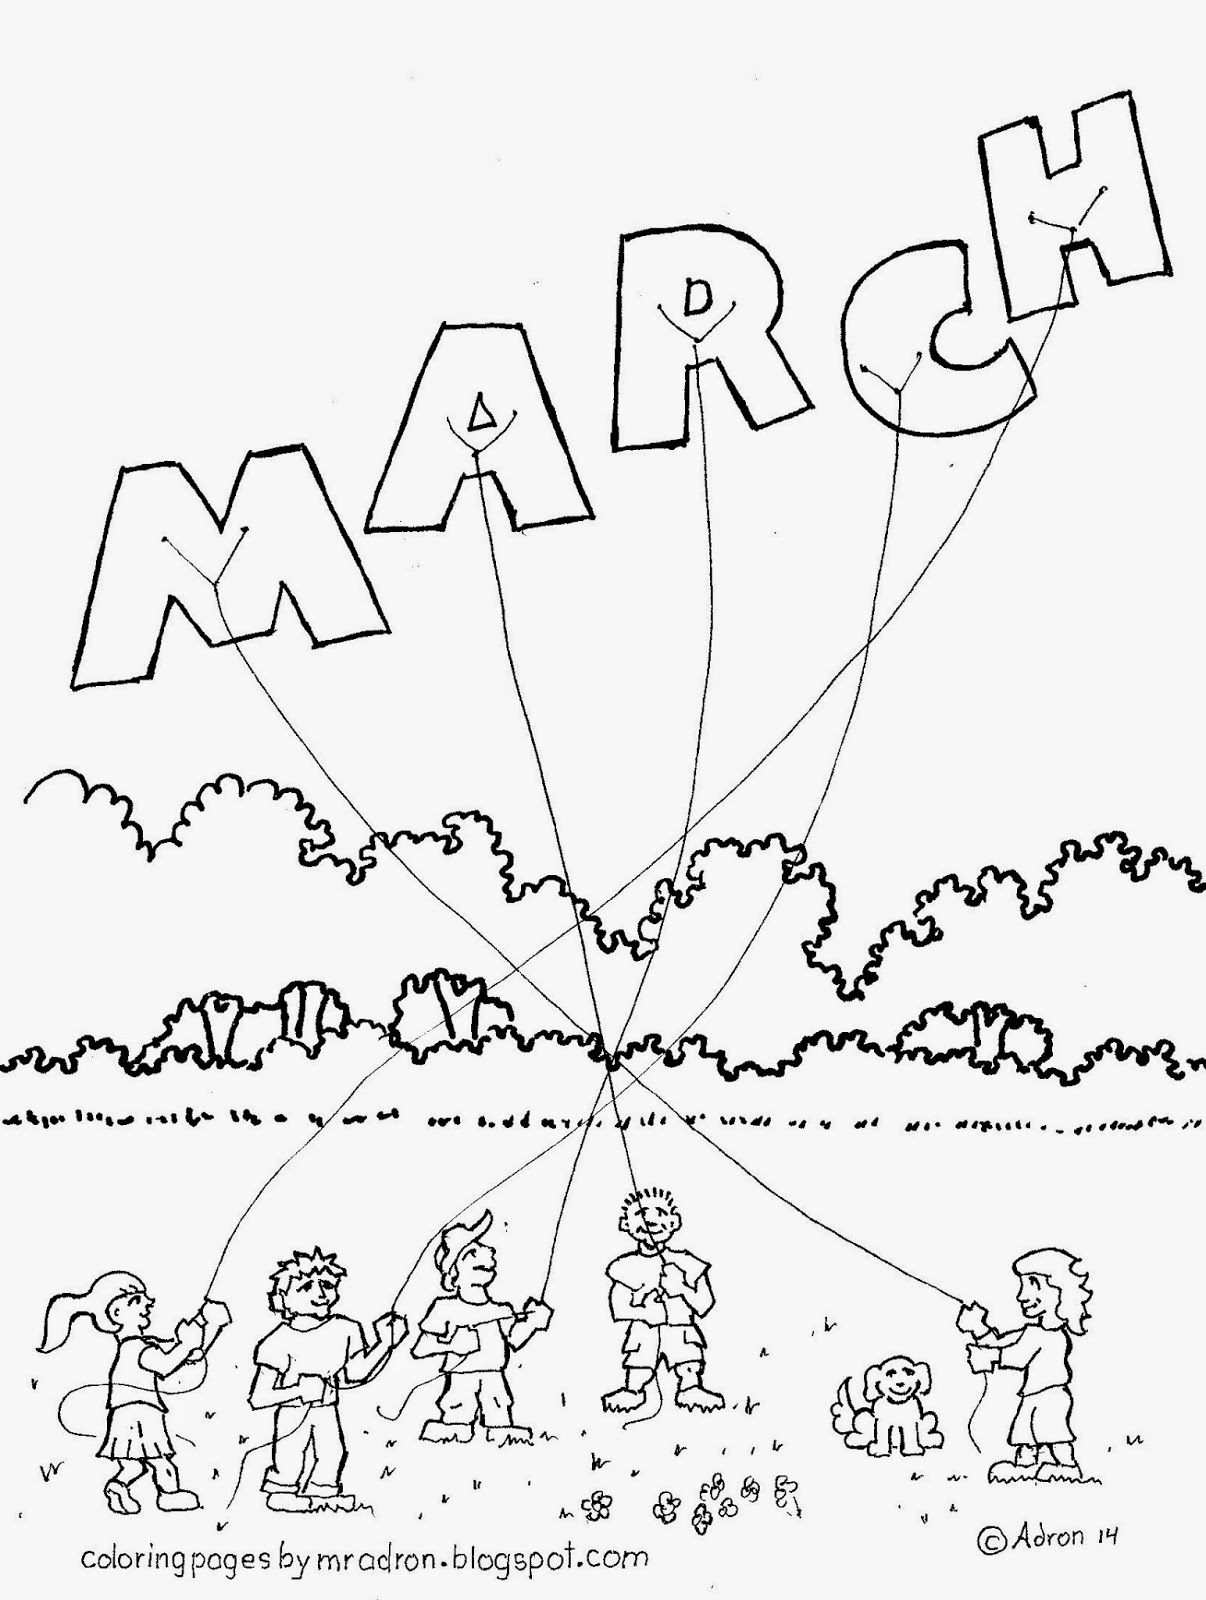 Month of March Coloring Pages for Kids high resolution